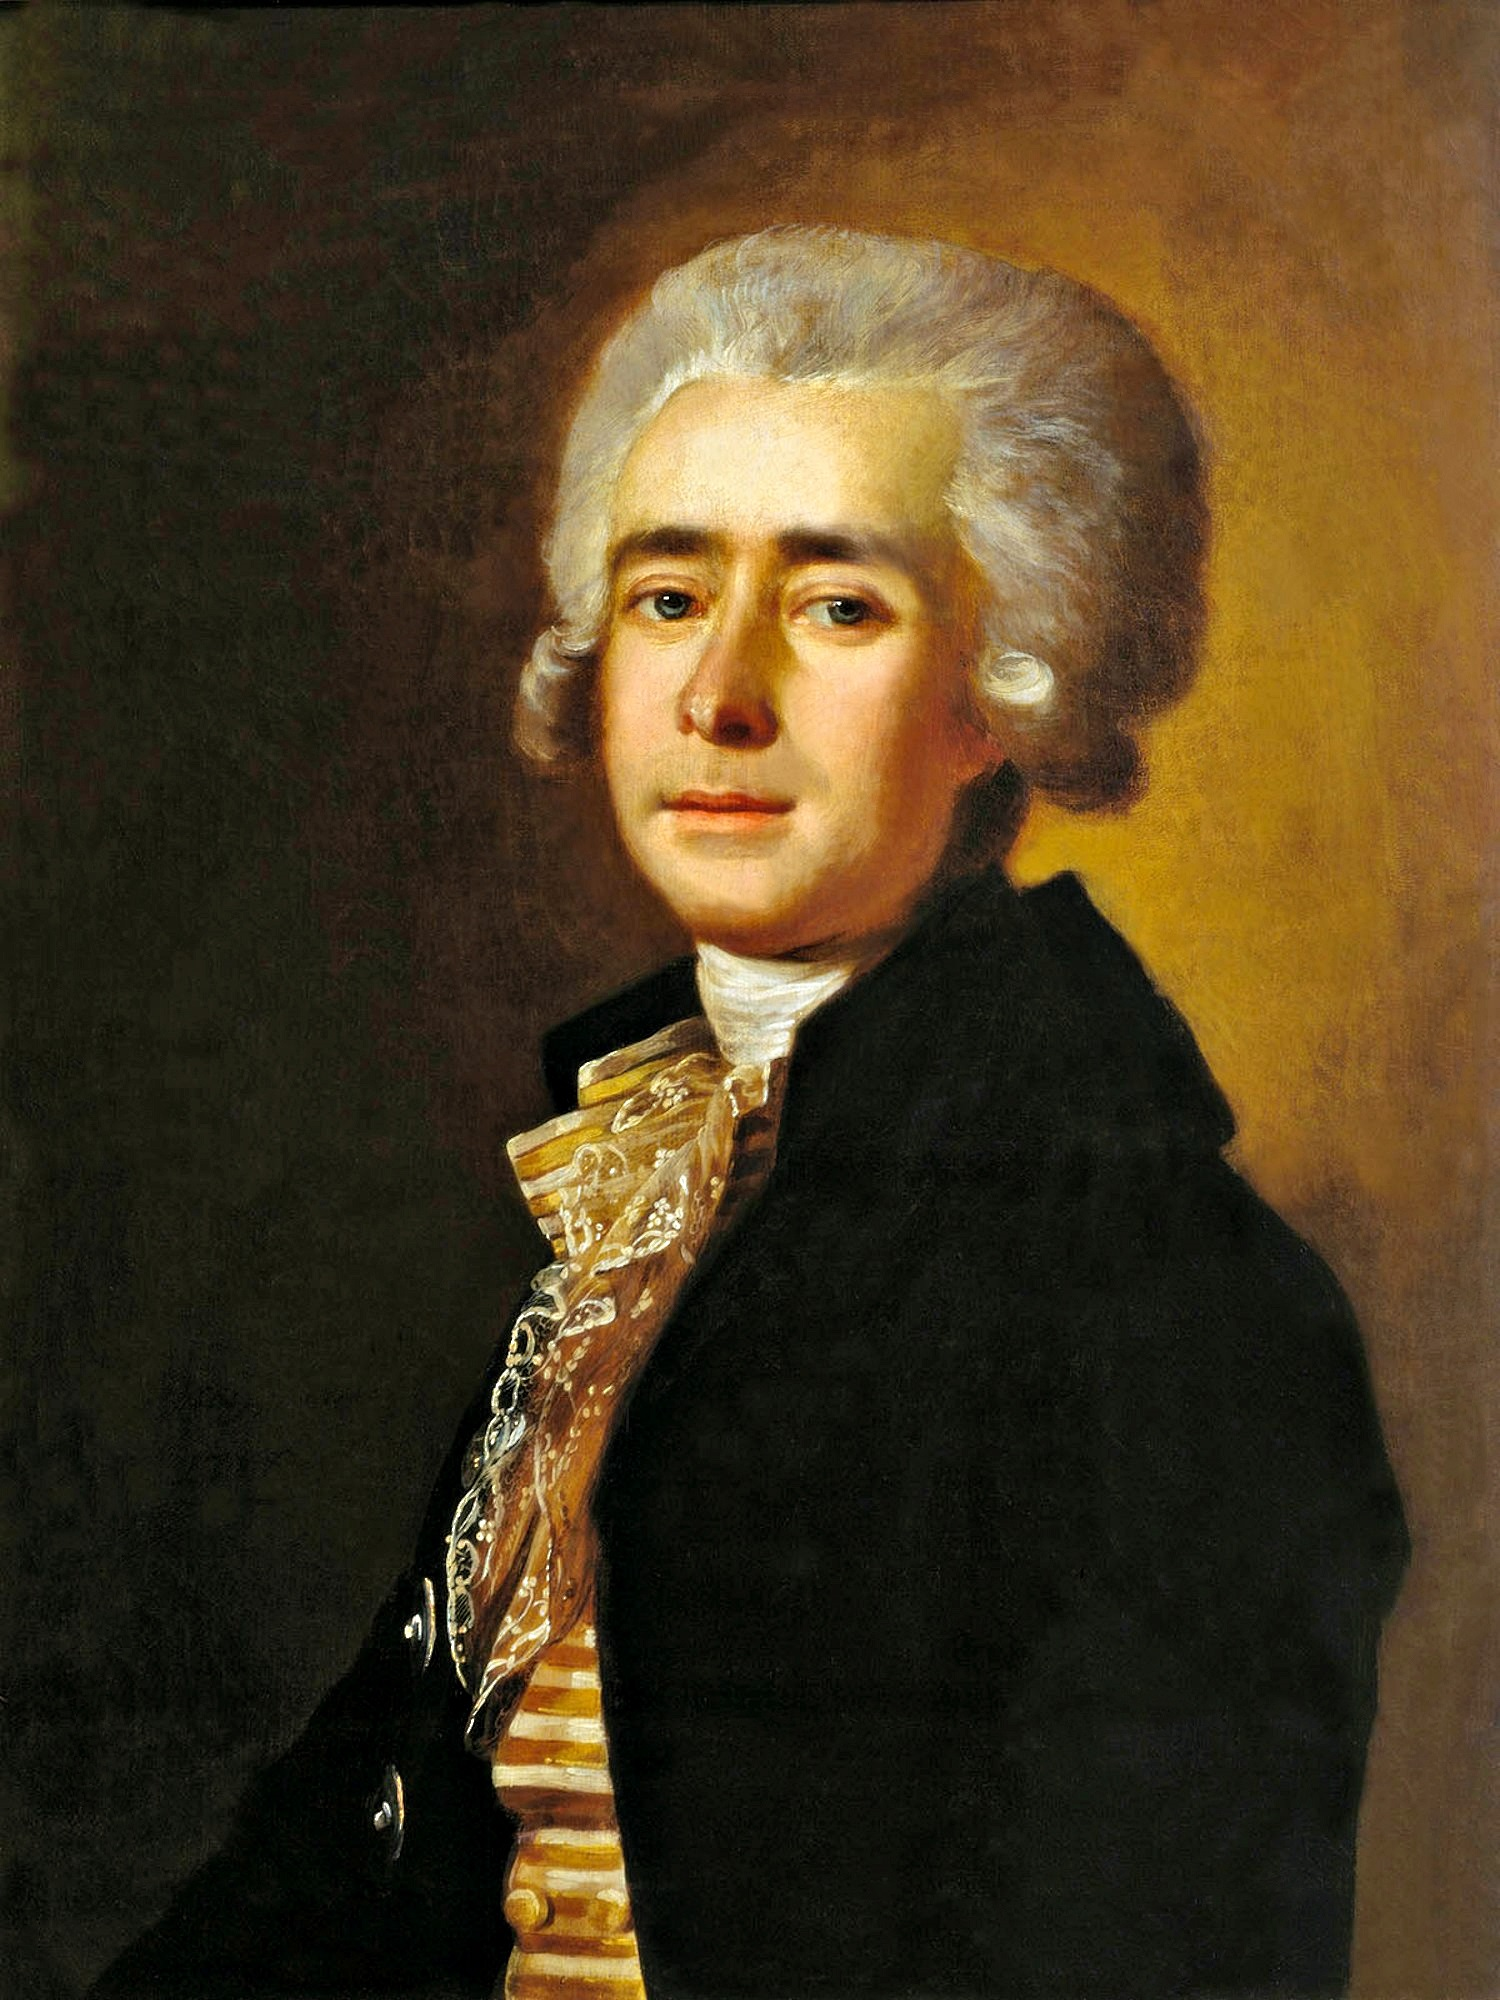 00 Mikhail Belsky. A Portrait of the Composer Dmitri Stepanovich Bortnyansky. 1788